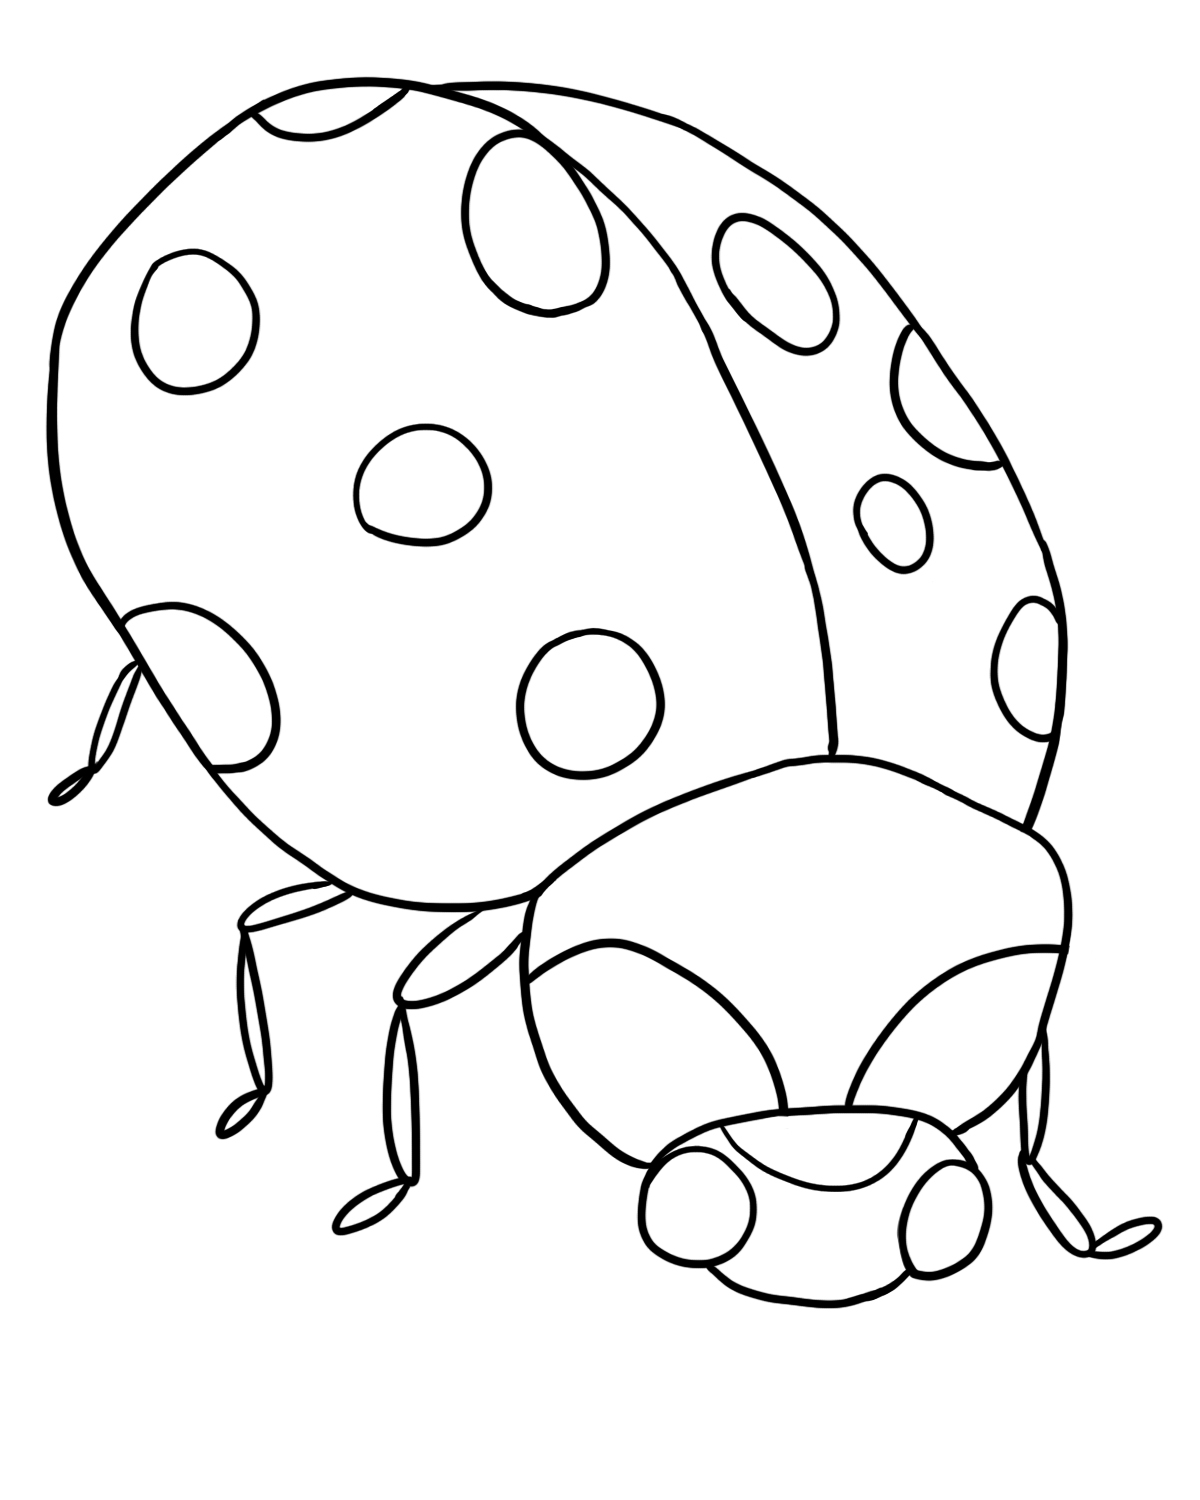 bug coloring pages ladybug - photo#2